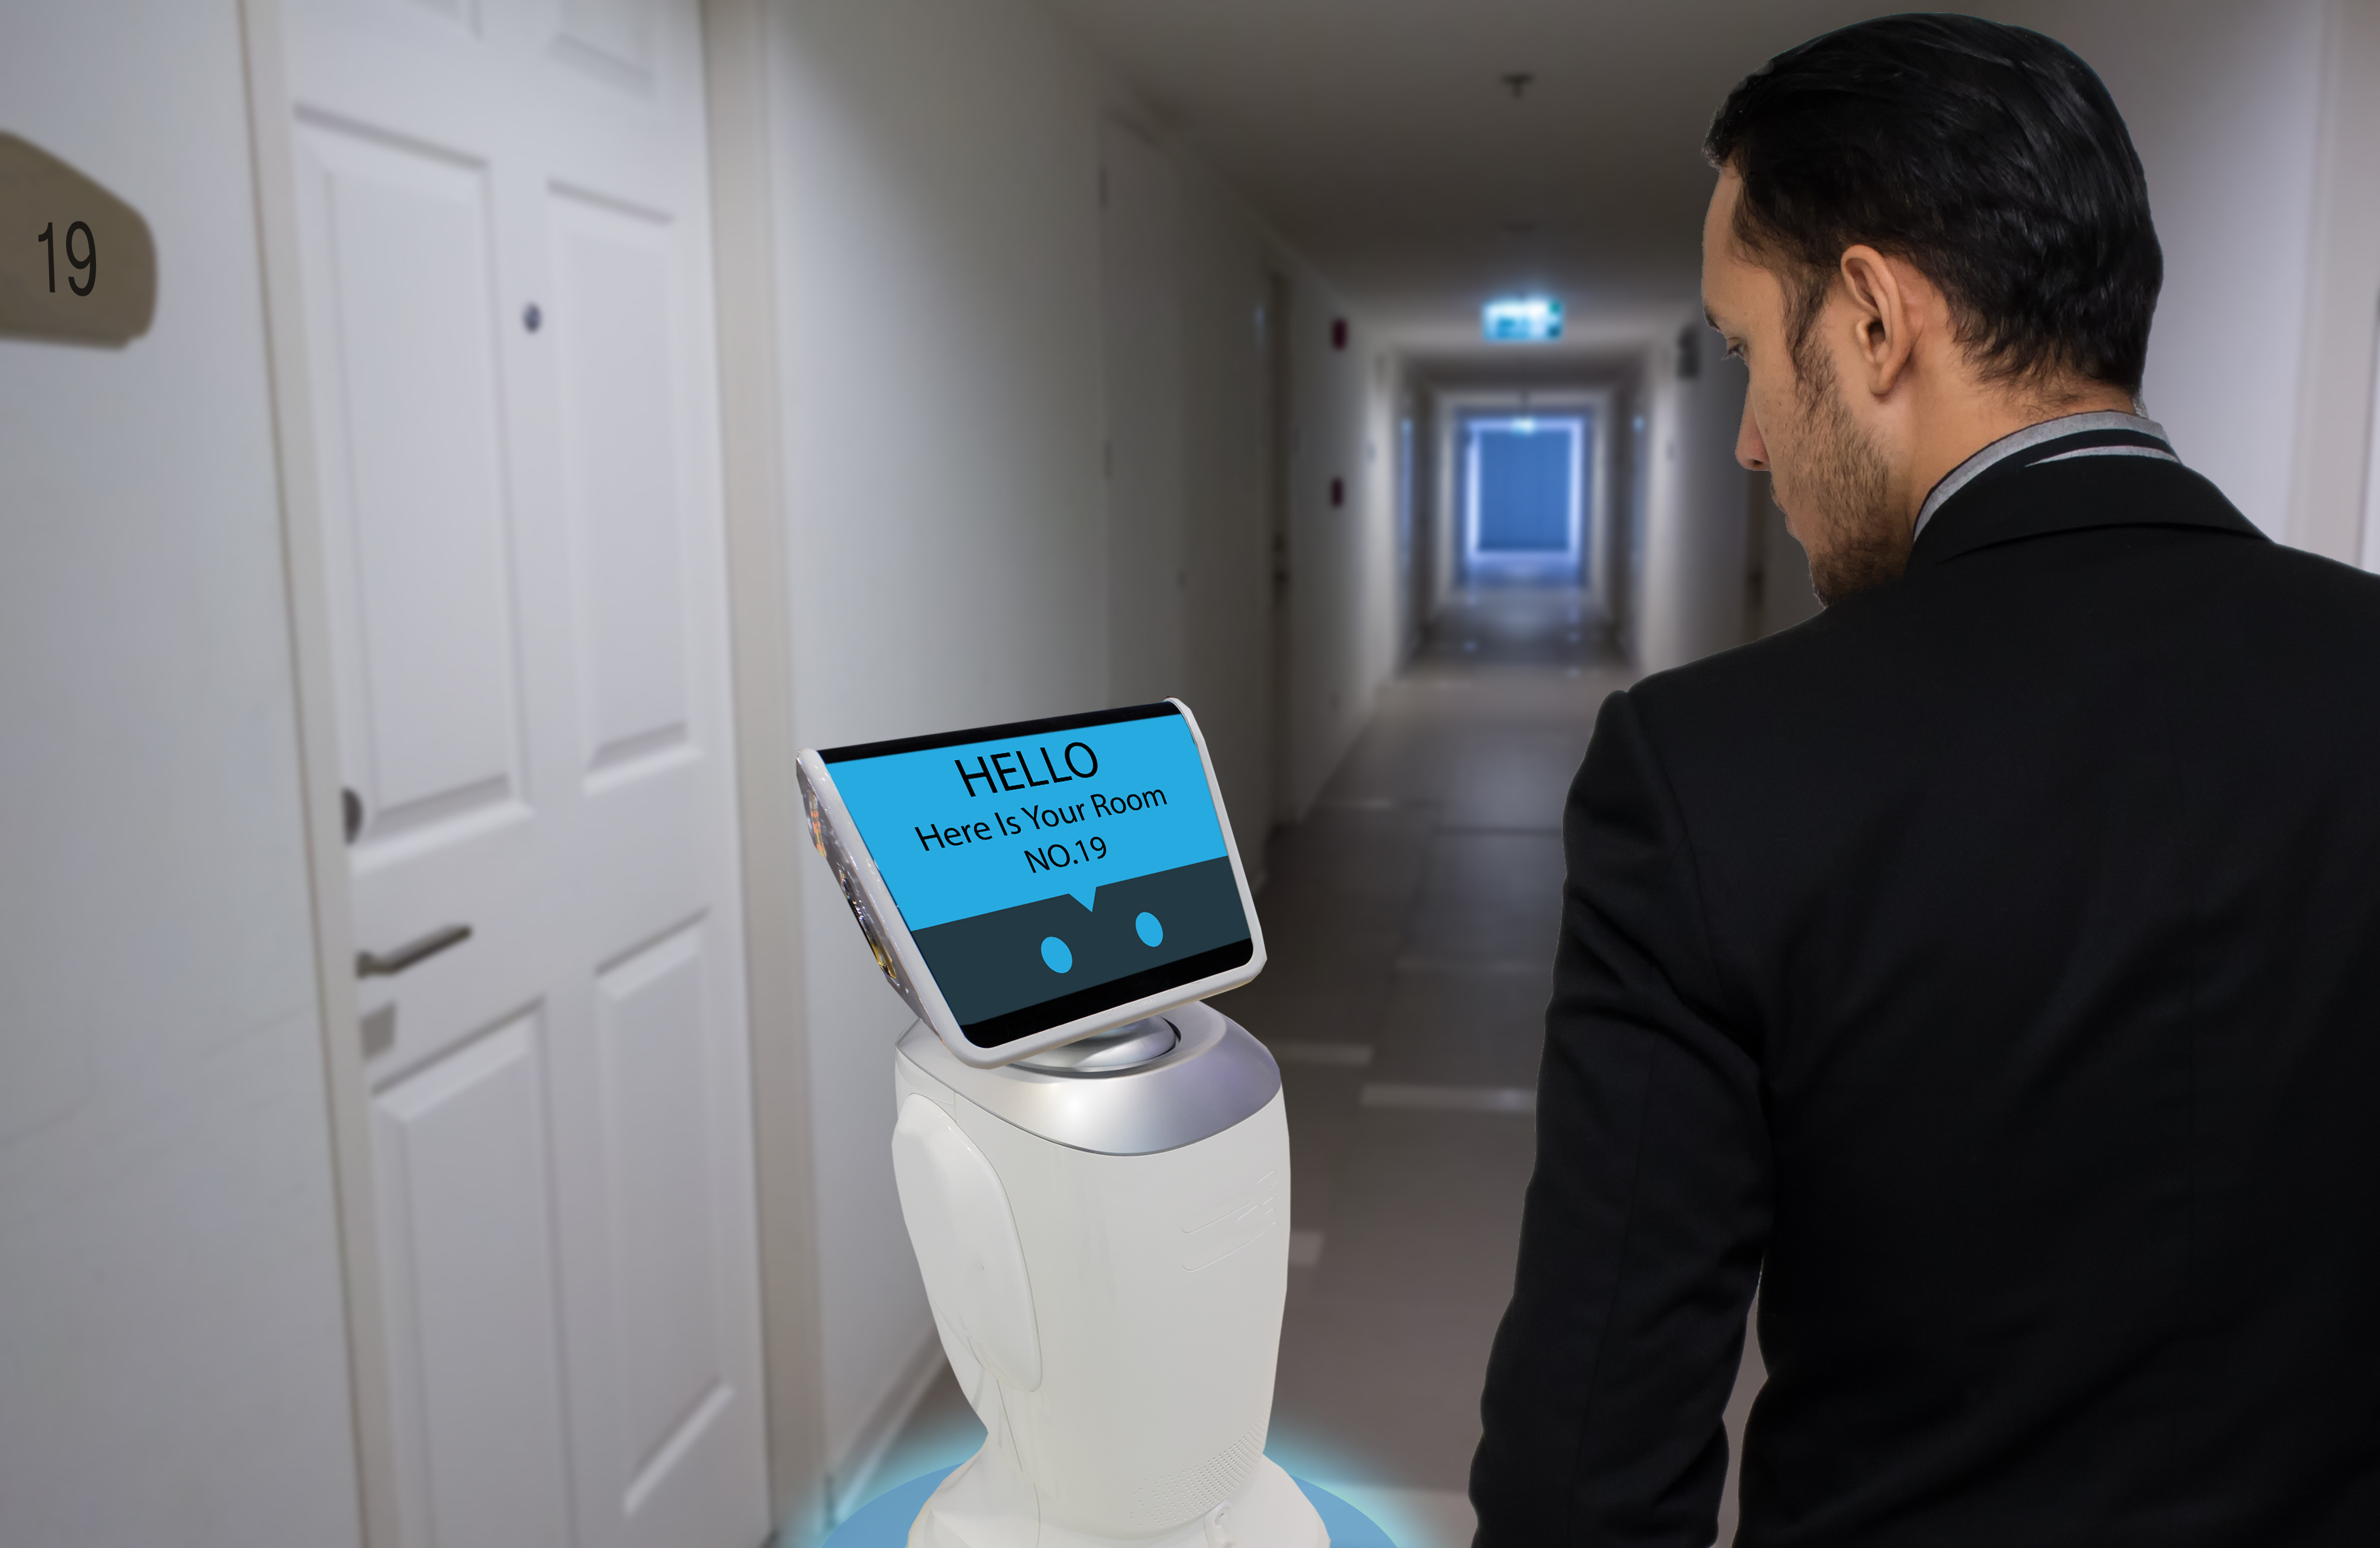 Robot Waiters – The future  or just a gimmick?